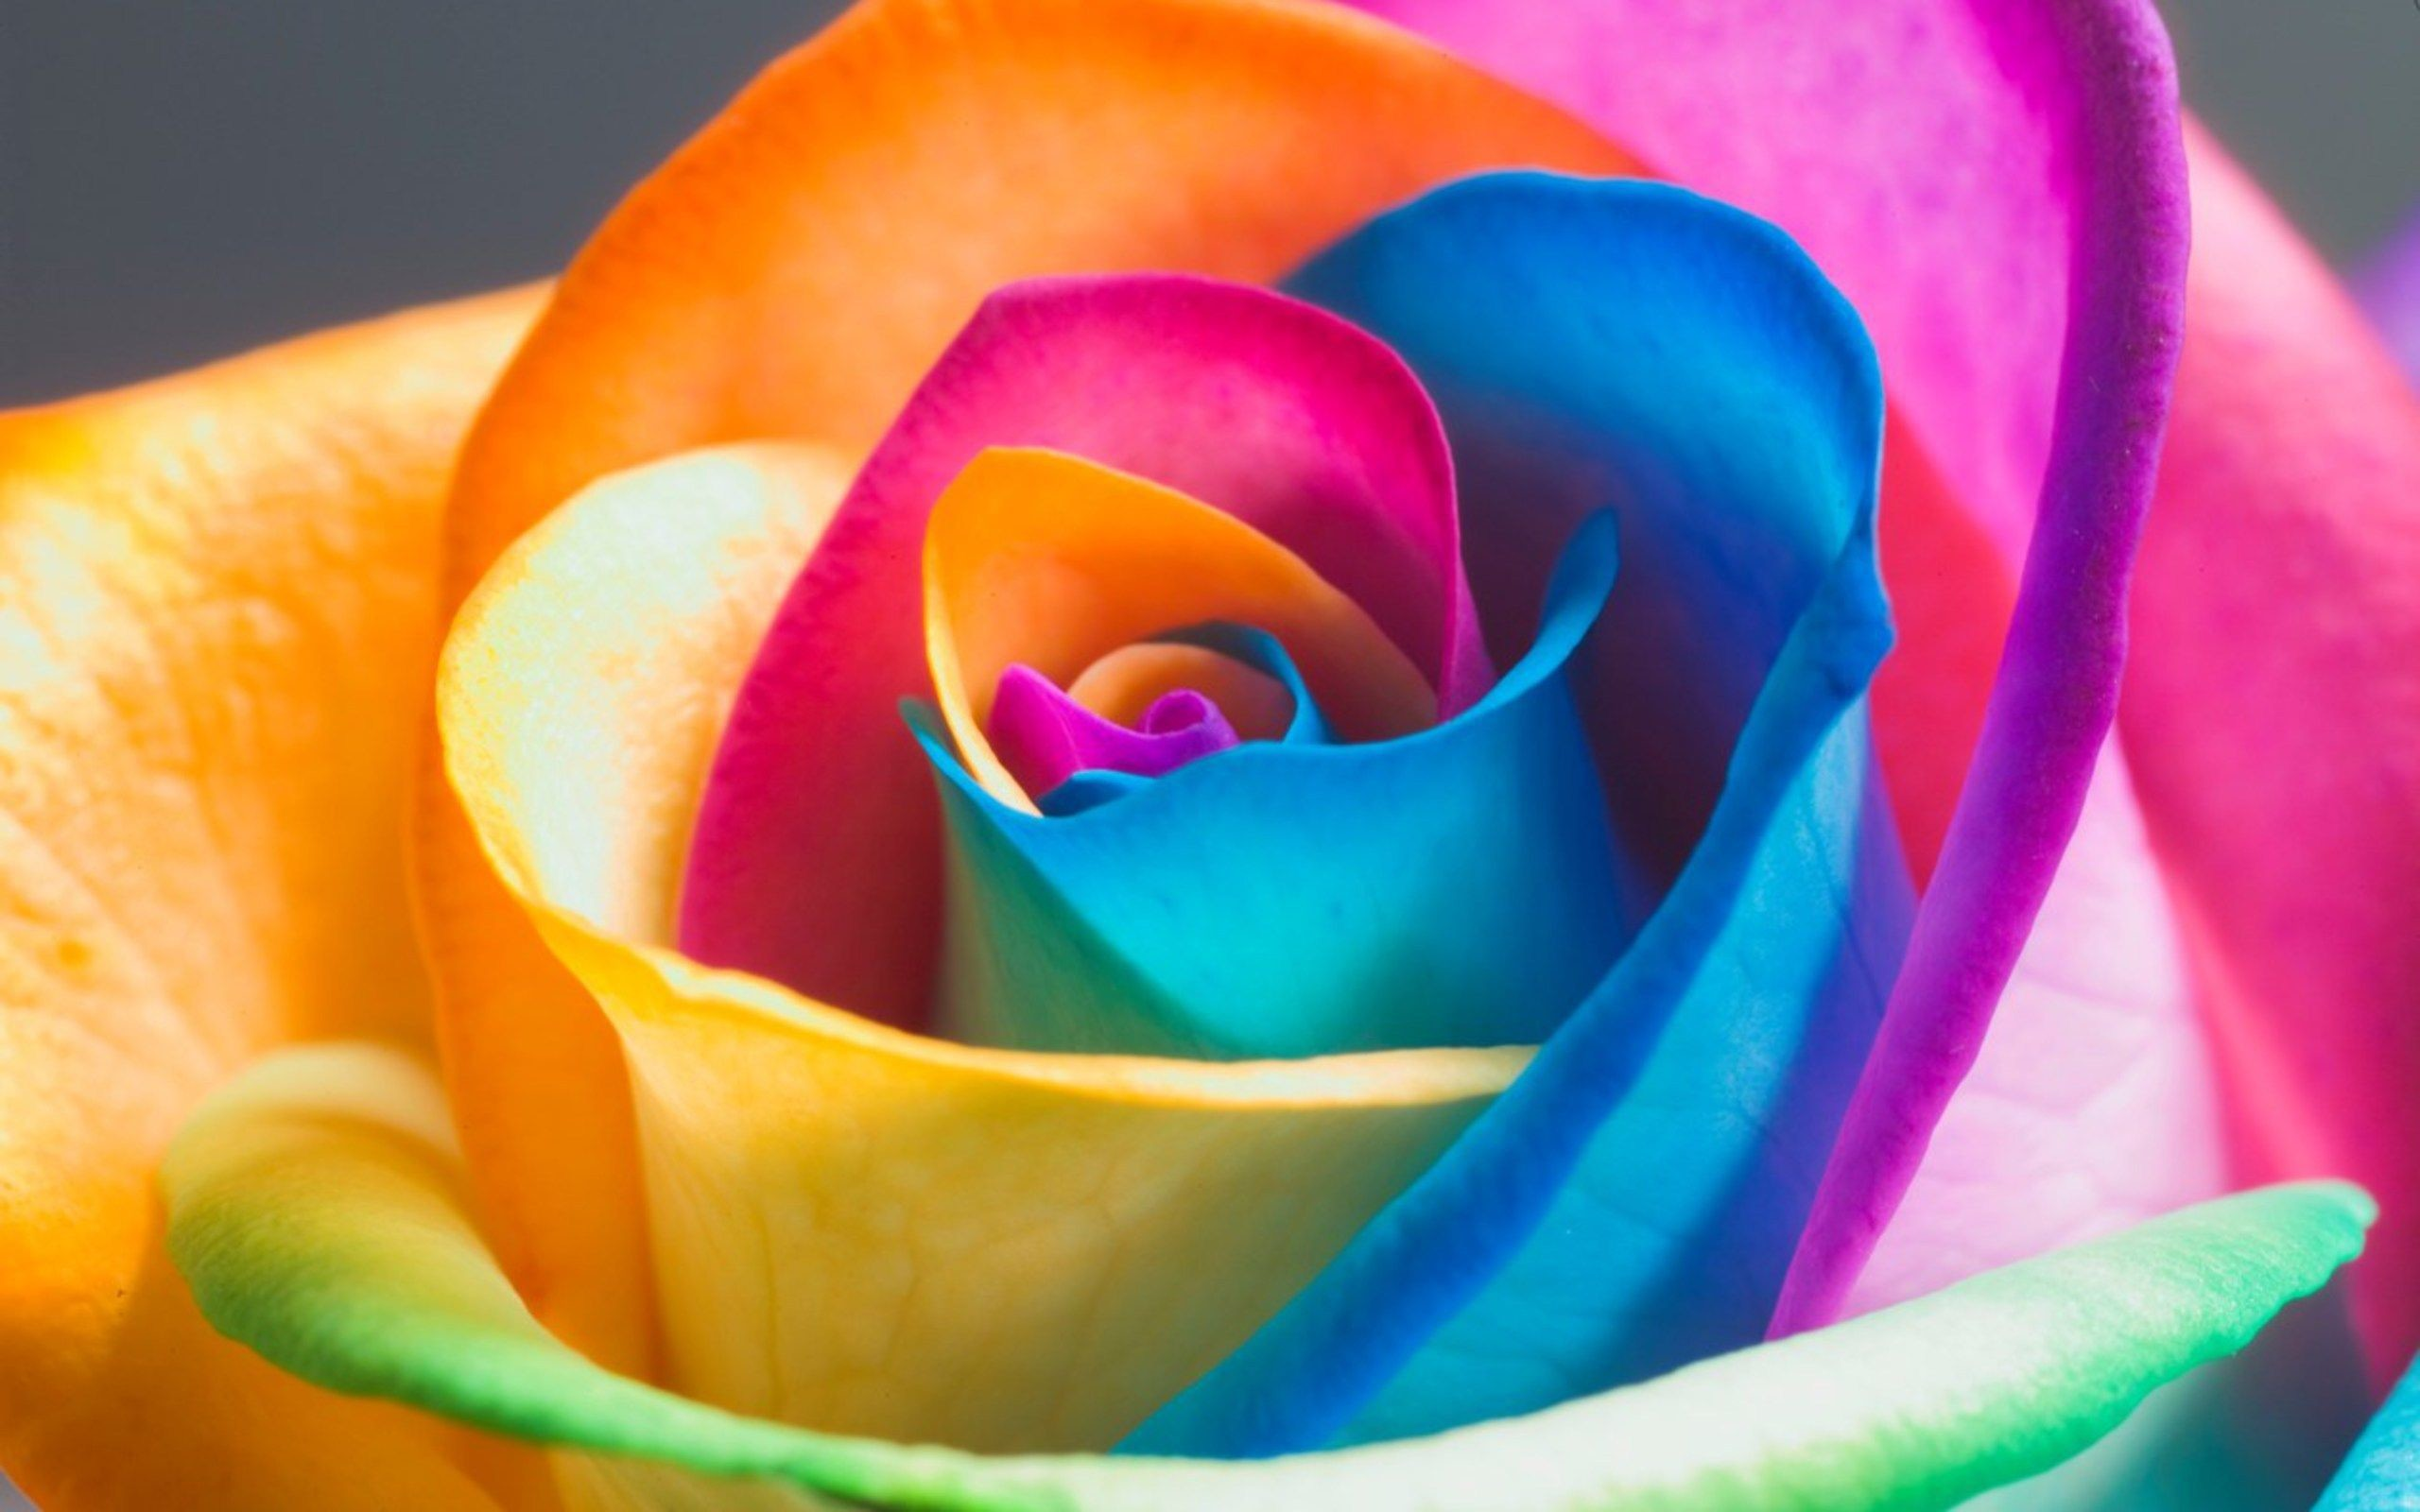 2560x1600 Garden plants Beautiful Rainbow Rose Seeds Multi-colored Rose seed – Decor  Home Ideas